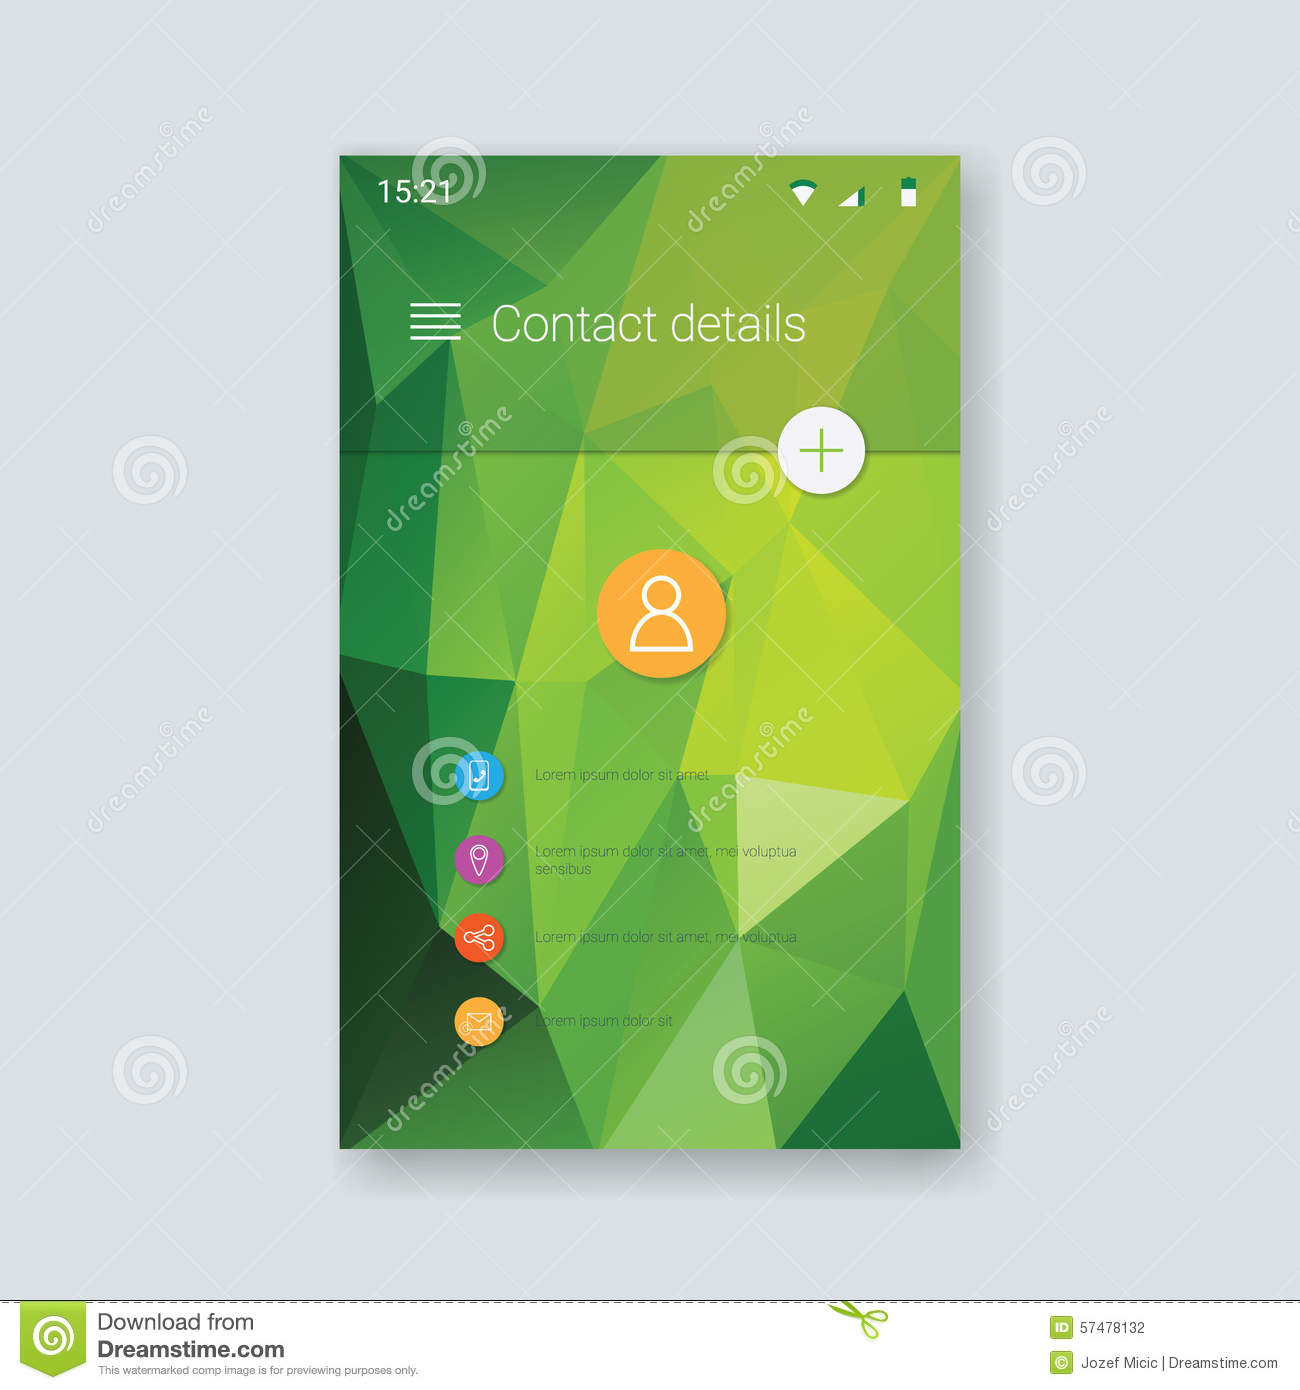 Mobile App Graphic User Interface Low Poly Stock Vector